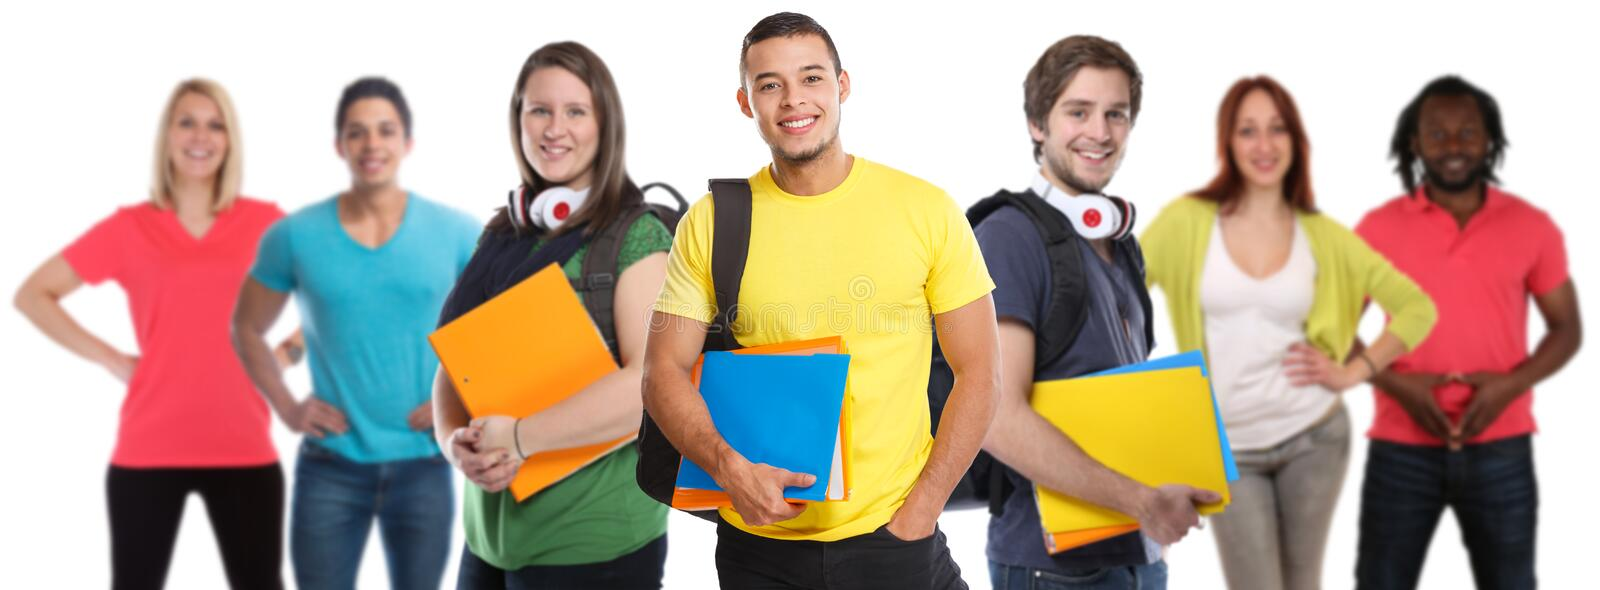 Group of students college student young people studies education smiling happy isolated on white stock photo